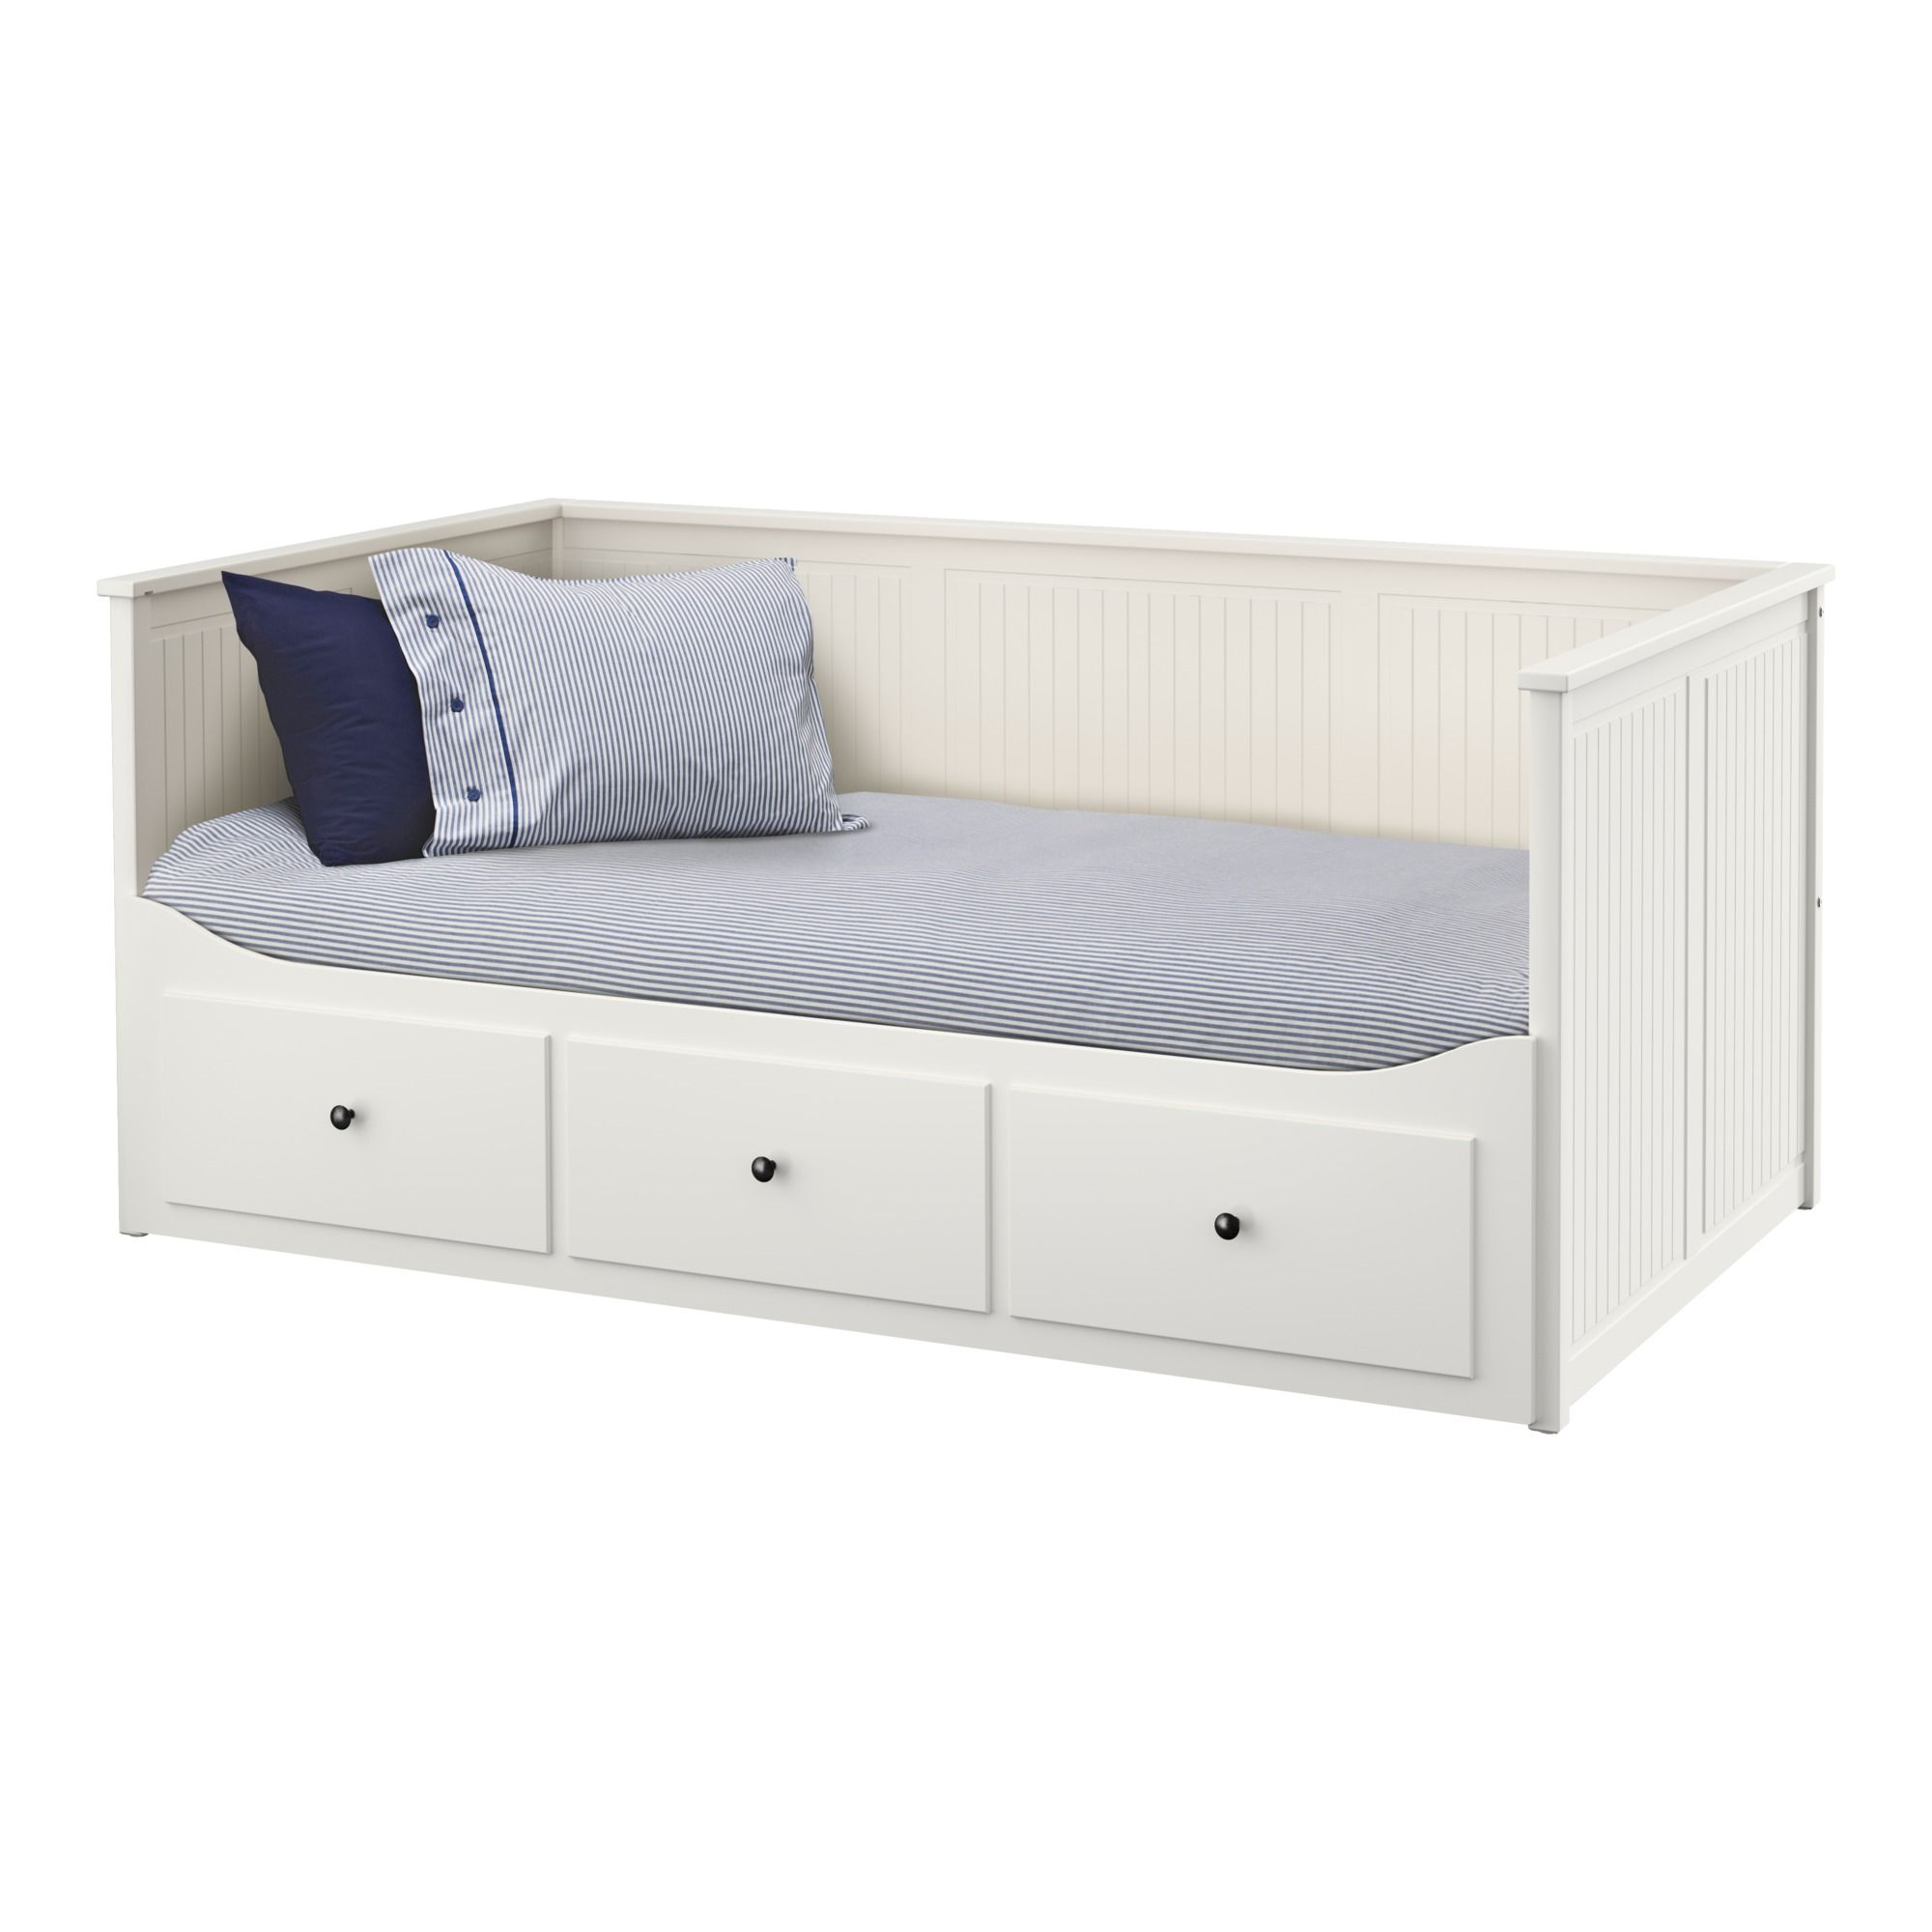 Us Furniture And Home Furnishings Ikea Tagesbett Bestes